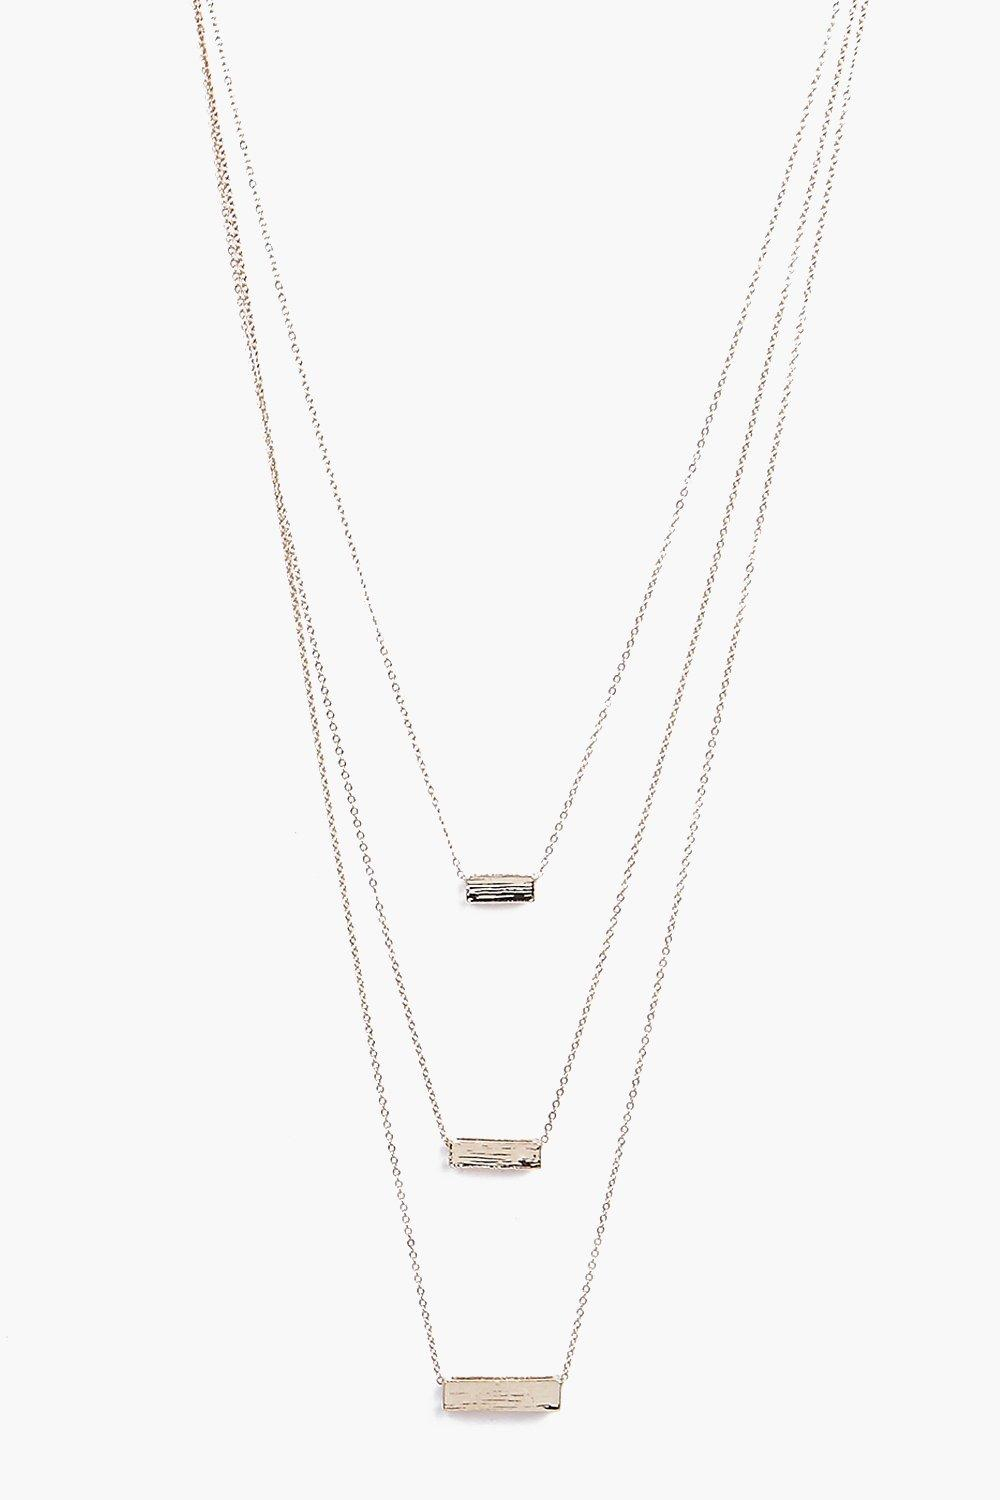 Lucy Block Pendant 3 Layered Necklace